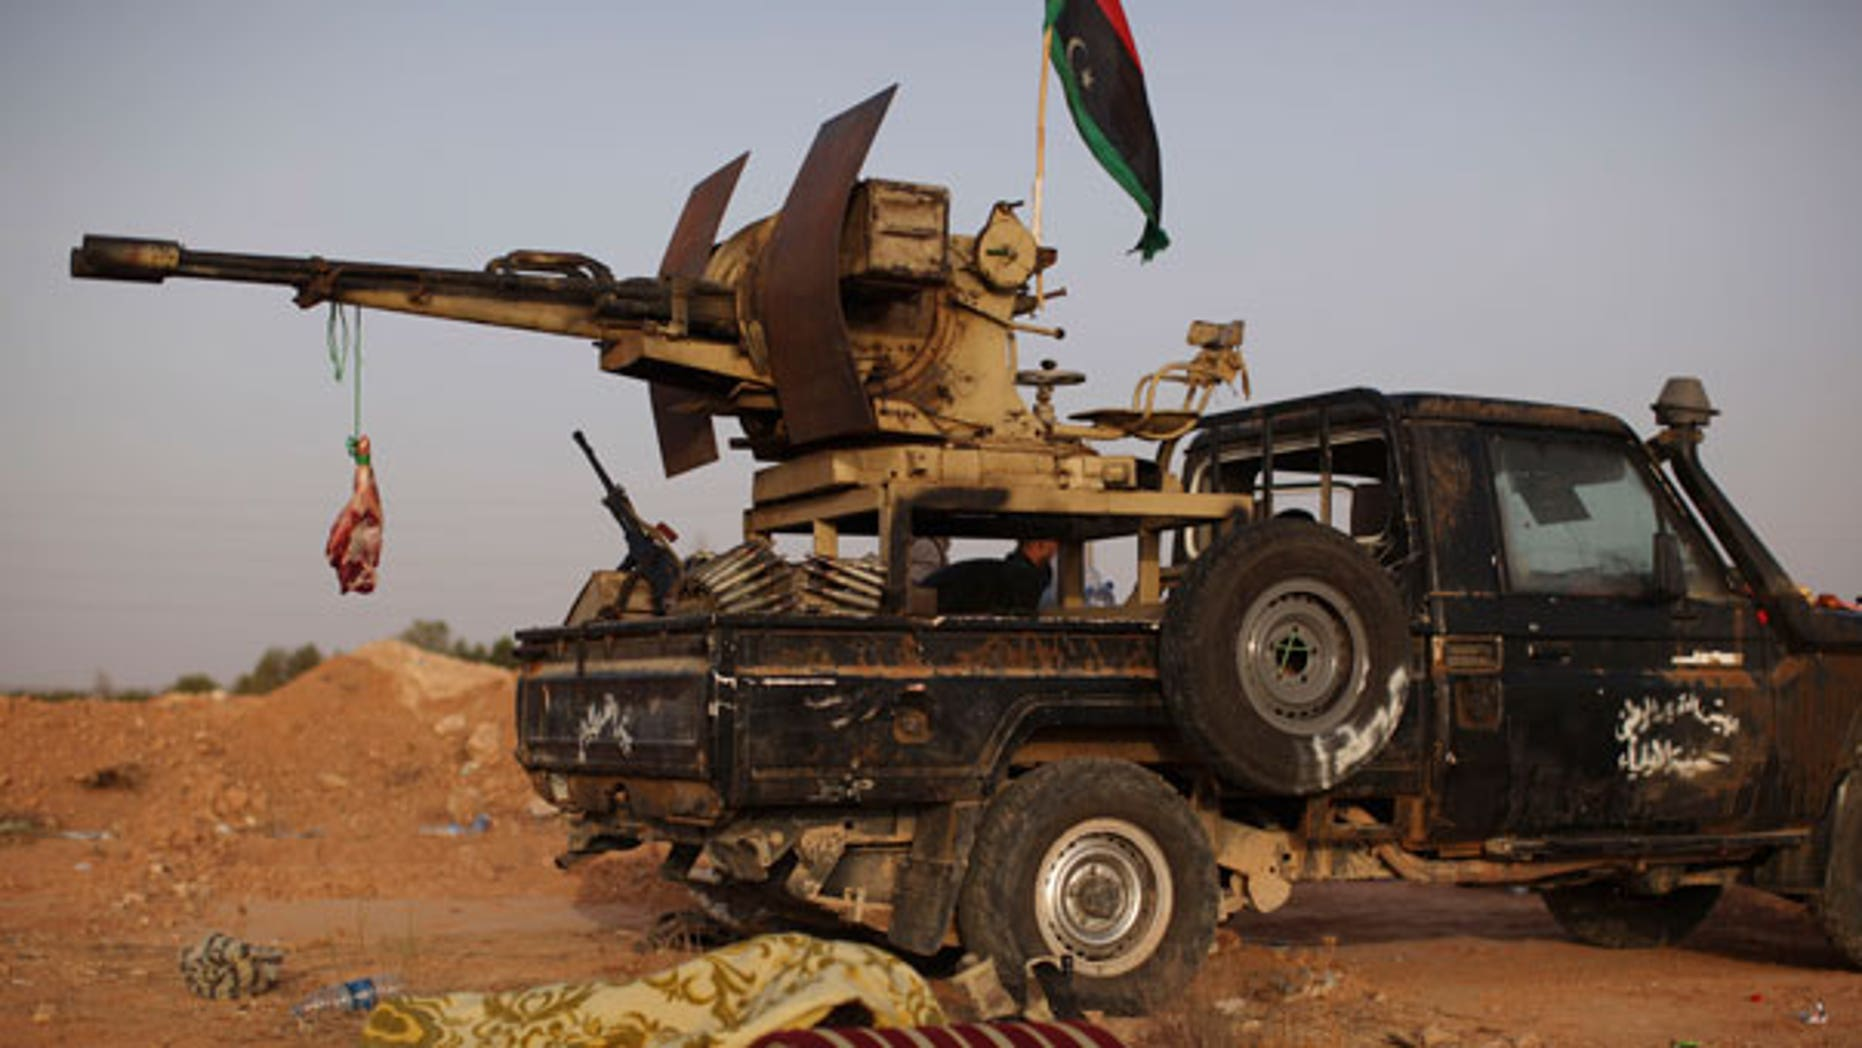 Sept. 5: A rebel fighter sleeps next to a goat's carcass hanging from an anti-aircraft gun at a checkpoint between Tarhouna and Bani Walid in Libya.